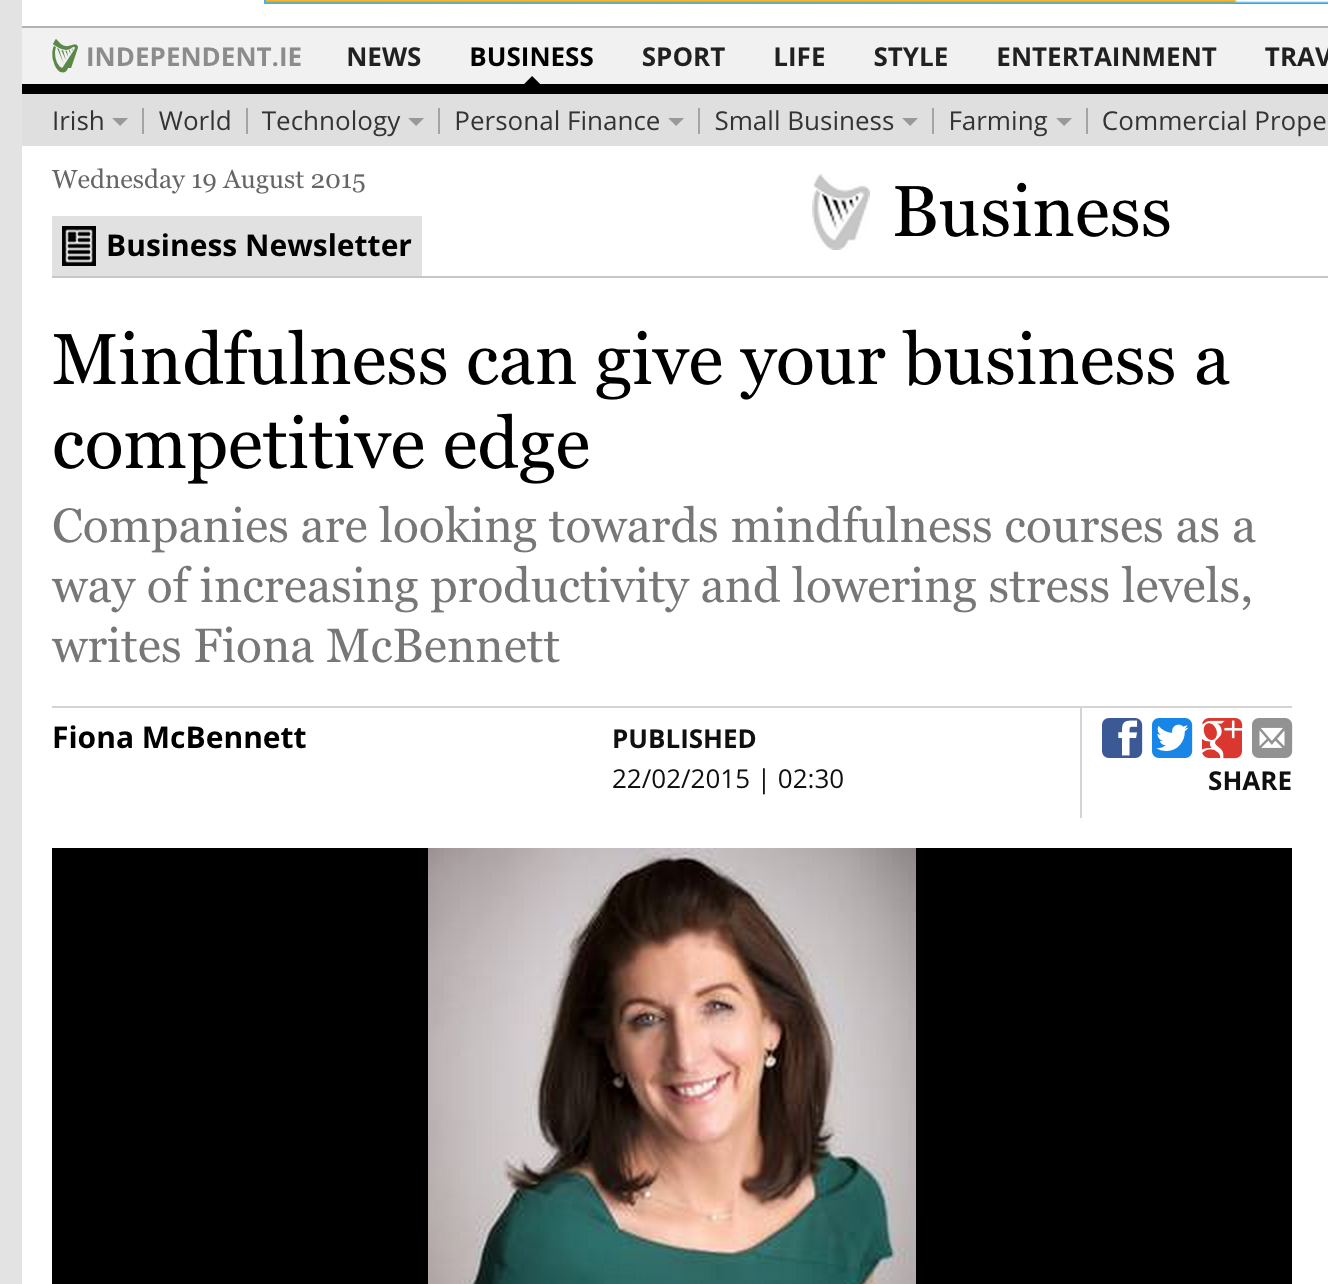 Sunday Independent : Mindfulness can give your business a competitive edge